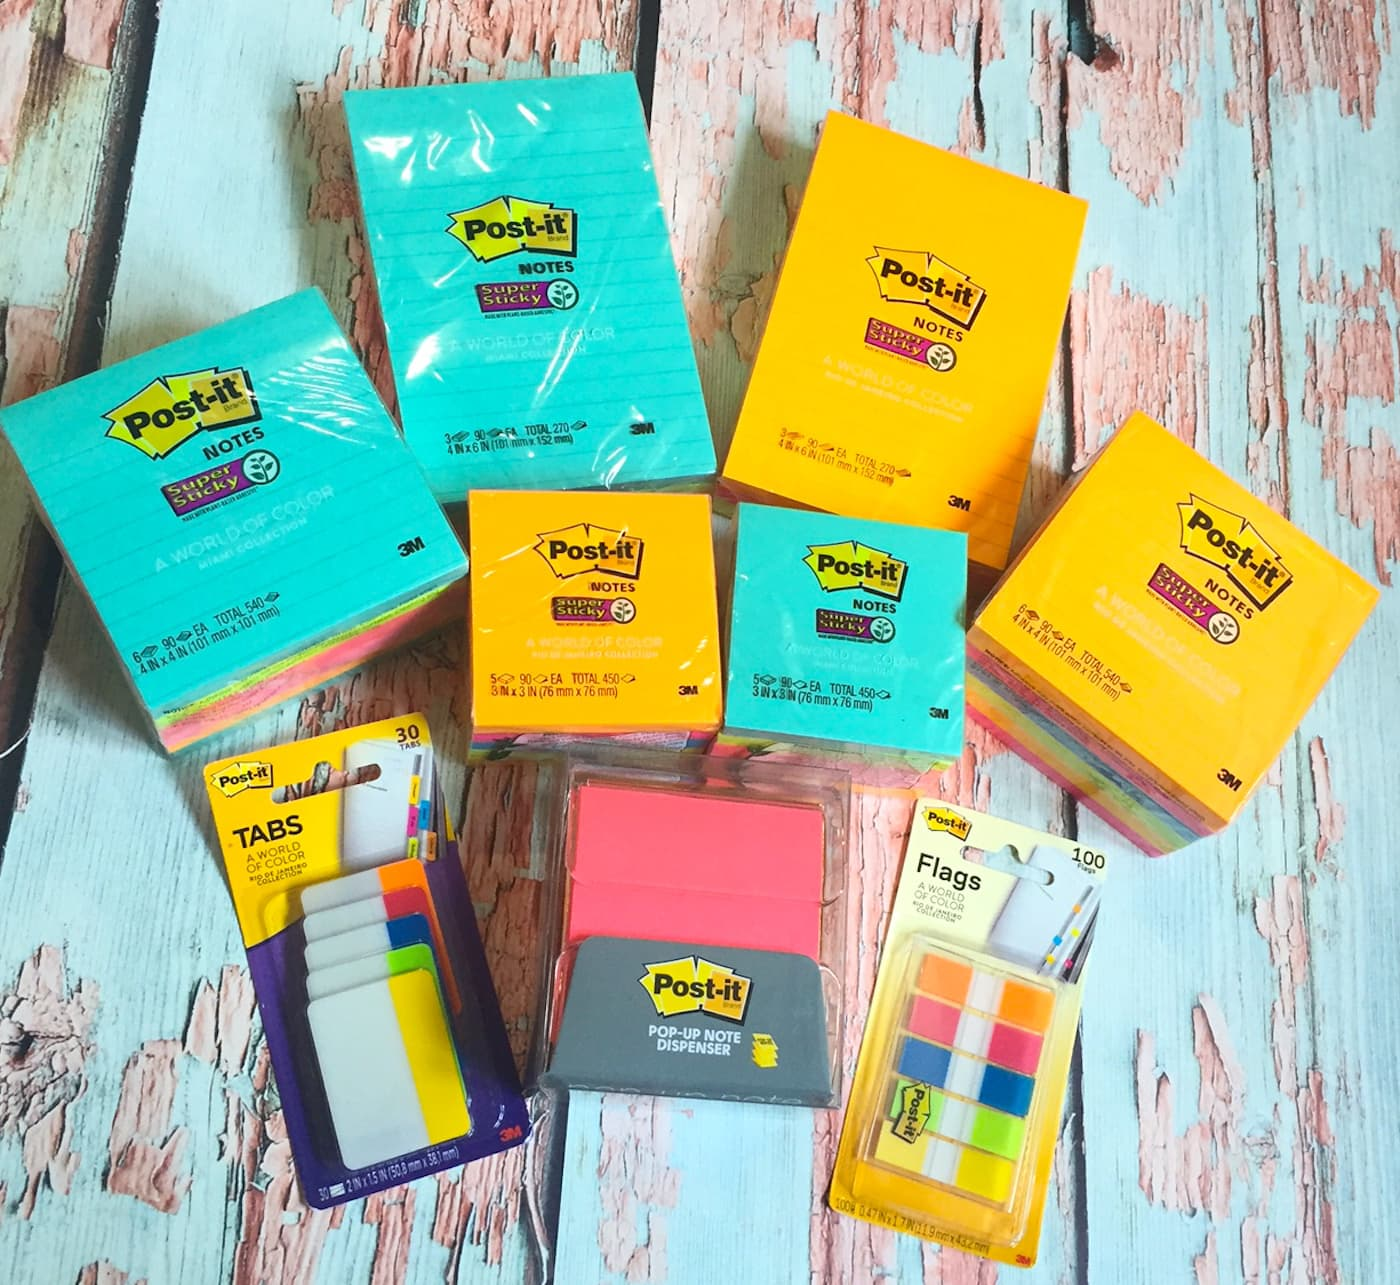 Head Back To School With Better Studying Habits and The Post-it® Brand #MakeItStick